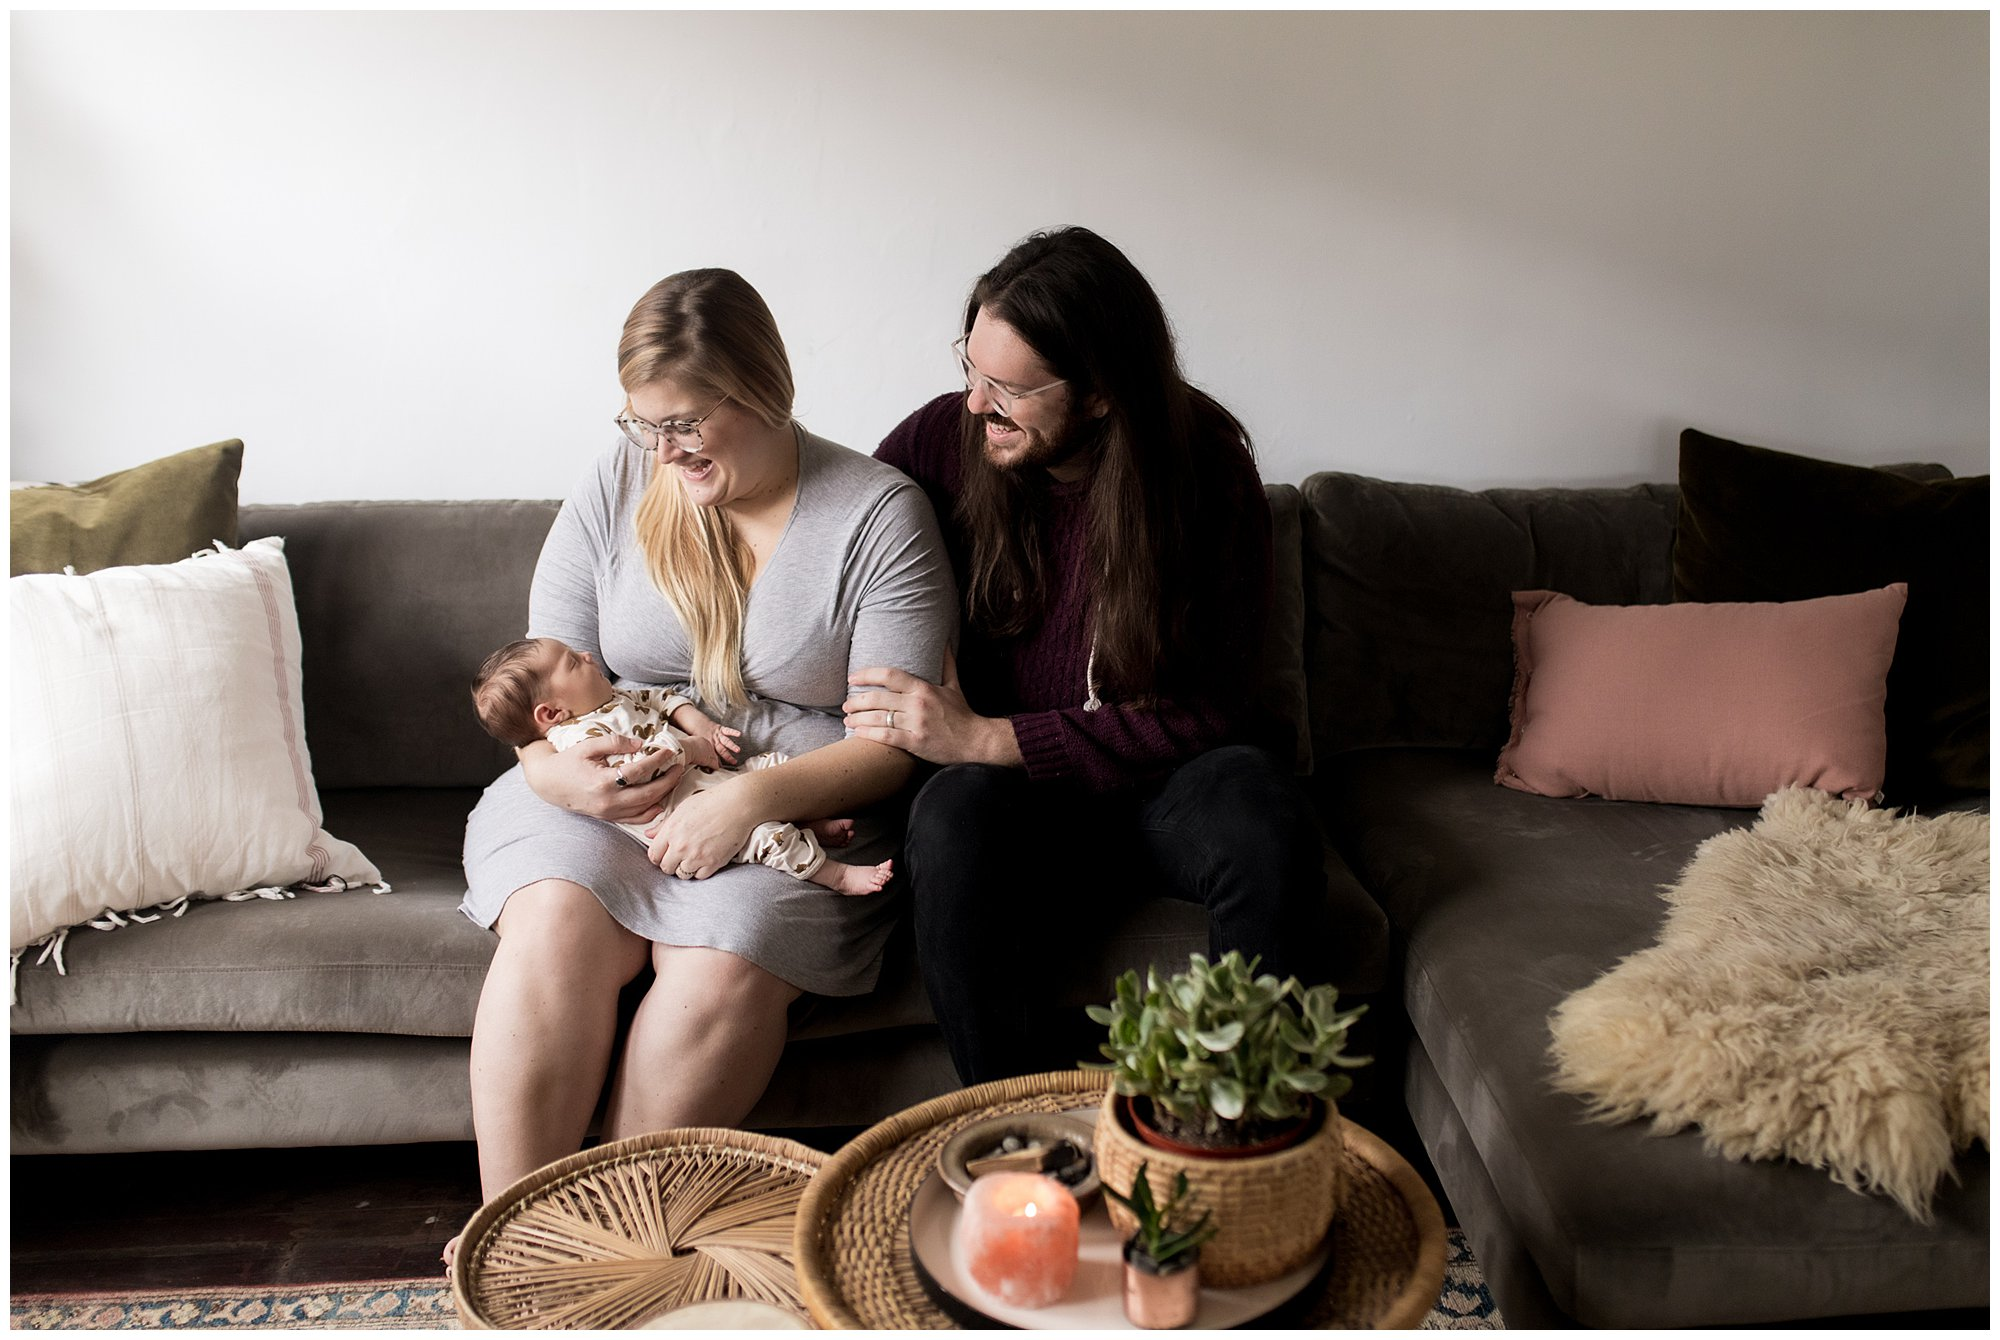 mom and dad hold baby on couch in living room